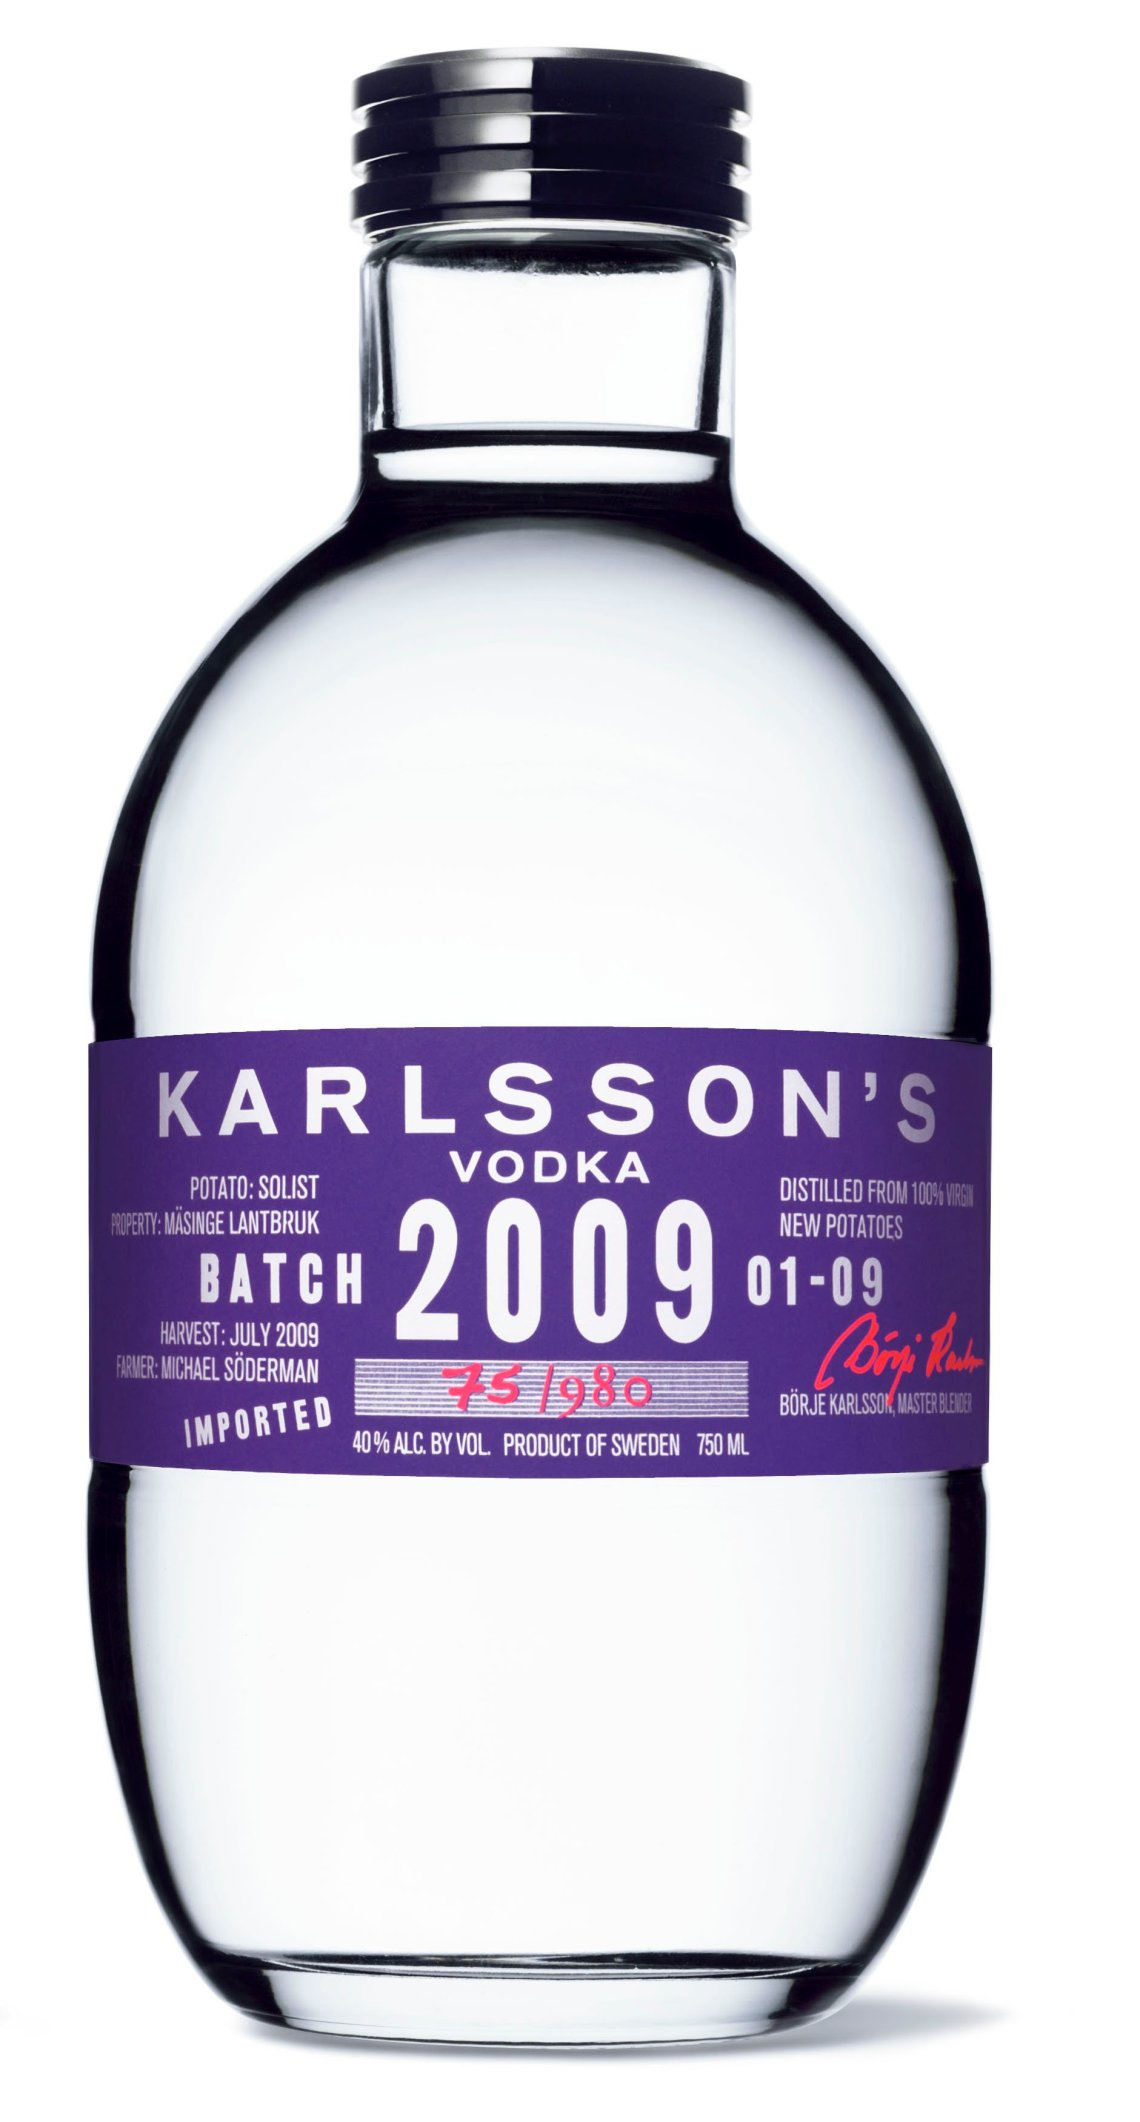 Karlsson's Gold Solist 2009 Single Vintage, Single Potato Vodka